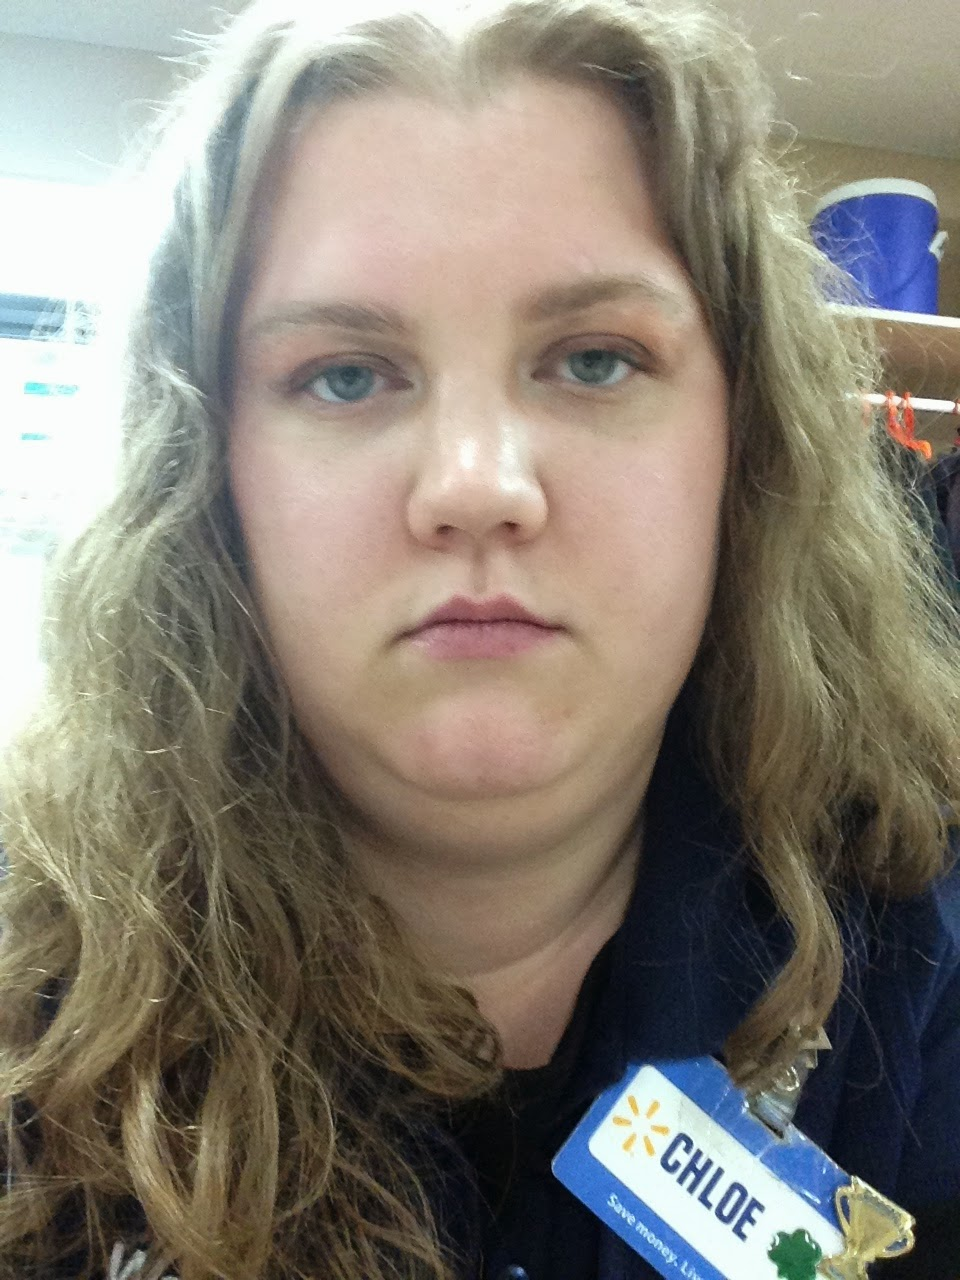 Resting Bitch Face at Walmart